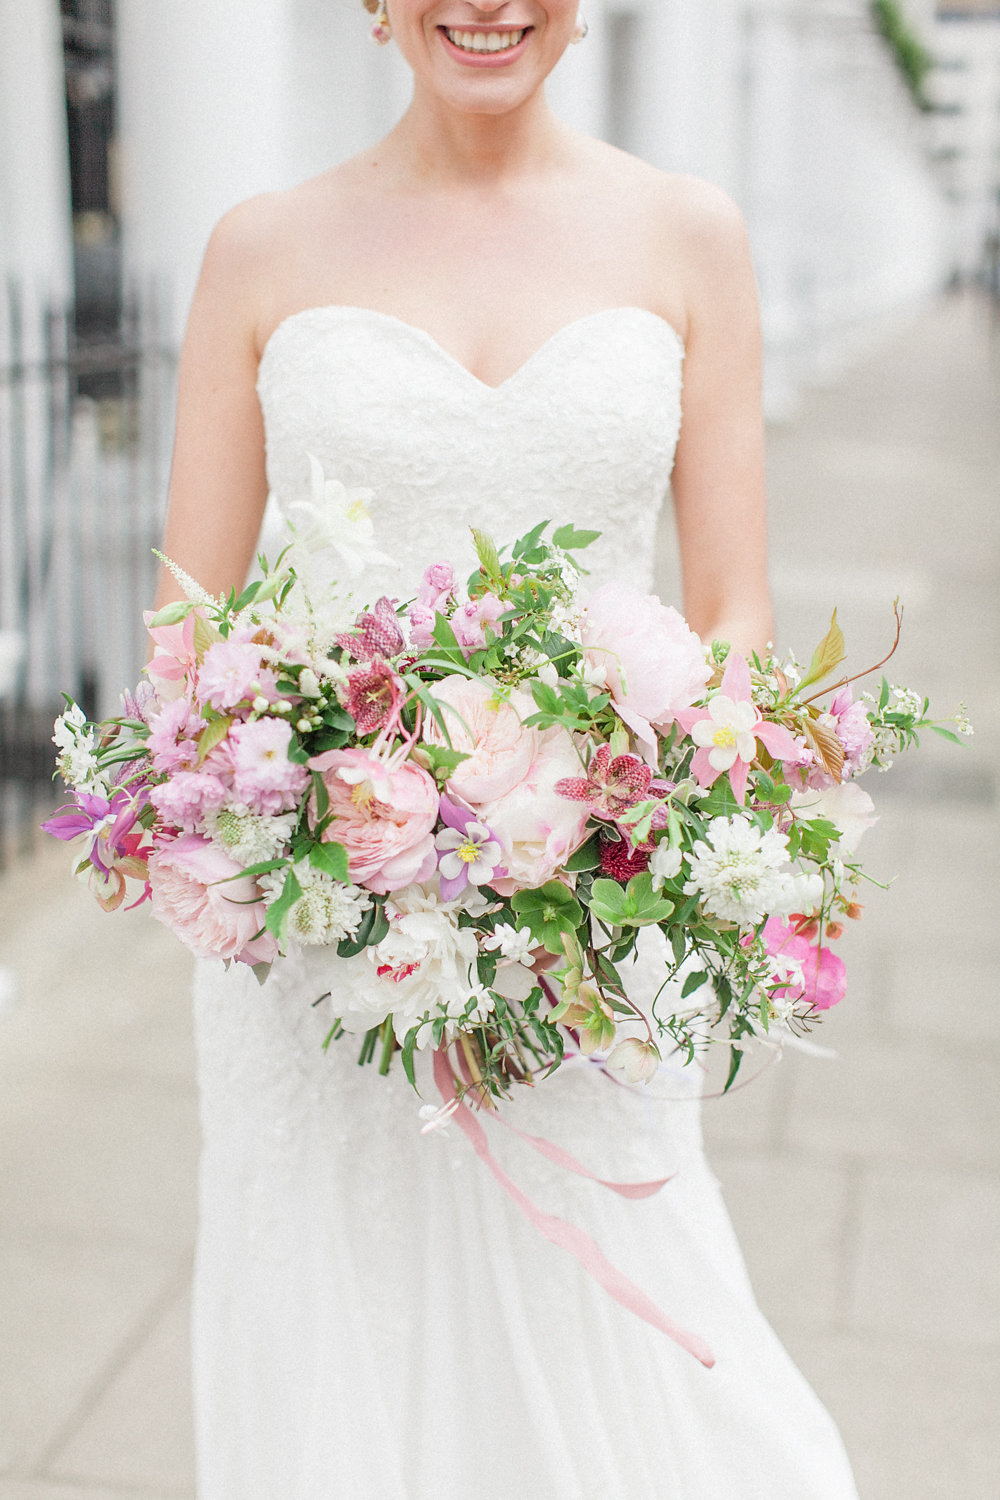 fresh pink bouquet - photo by Roberta Facchini Photography http://ruffledblog.com/herbarium-inspired-wedding-ideas